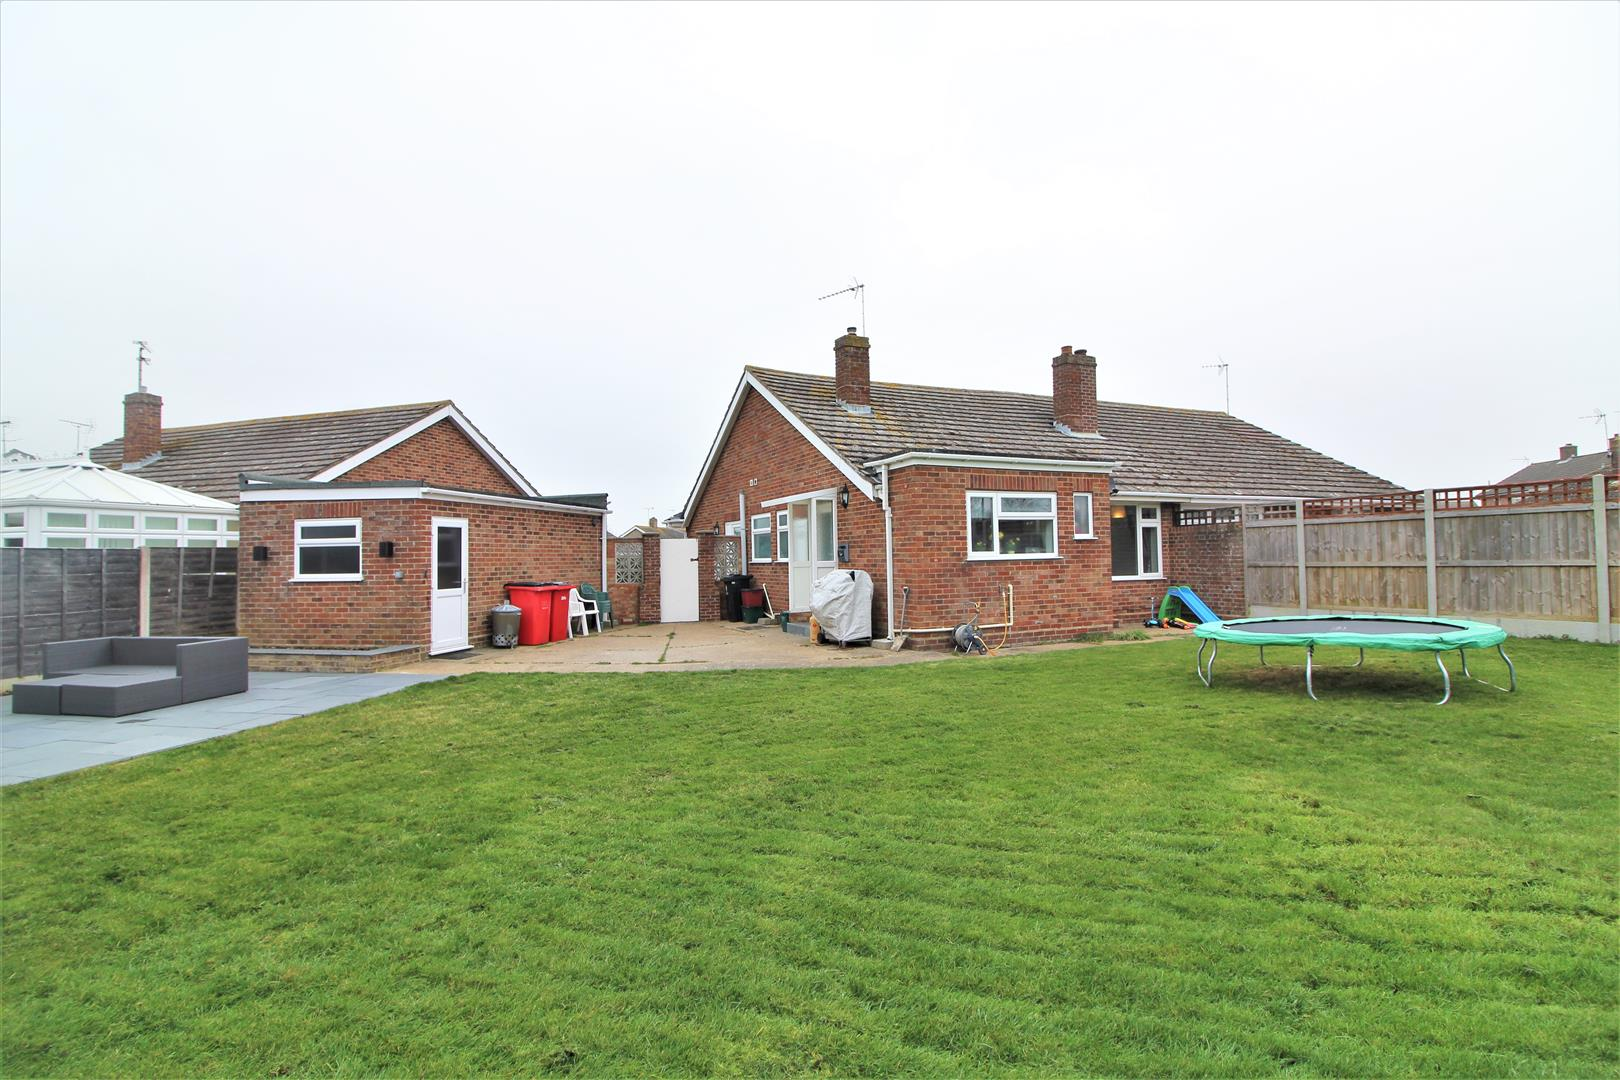 Crossfield Way, Kirby Cross, Essex, CO13 0LL